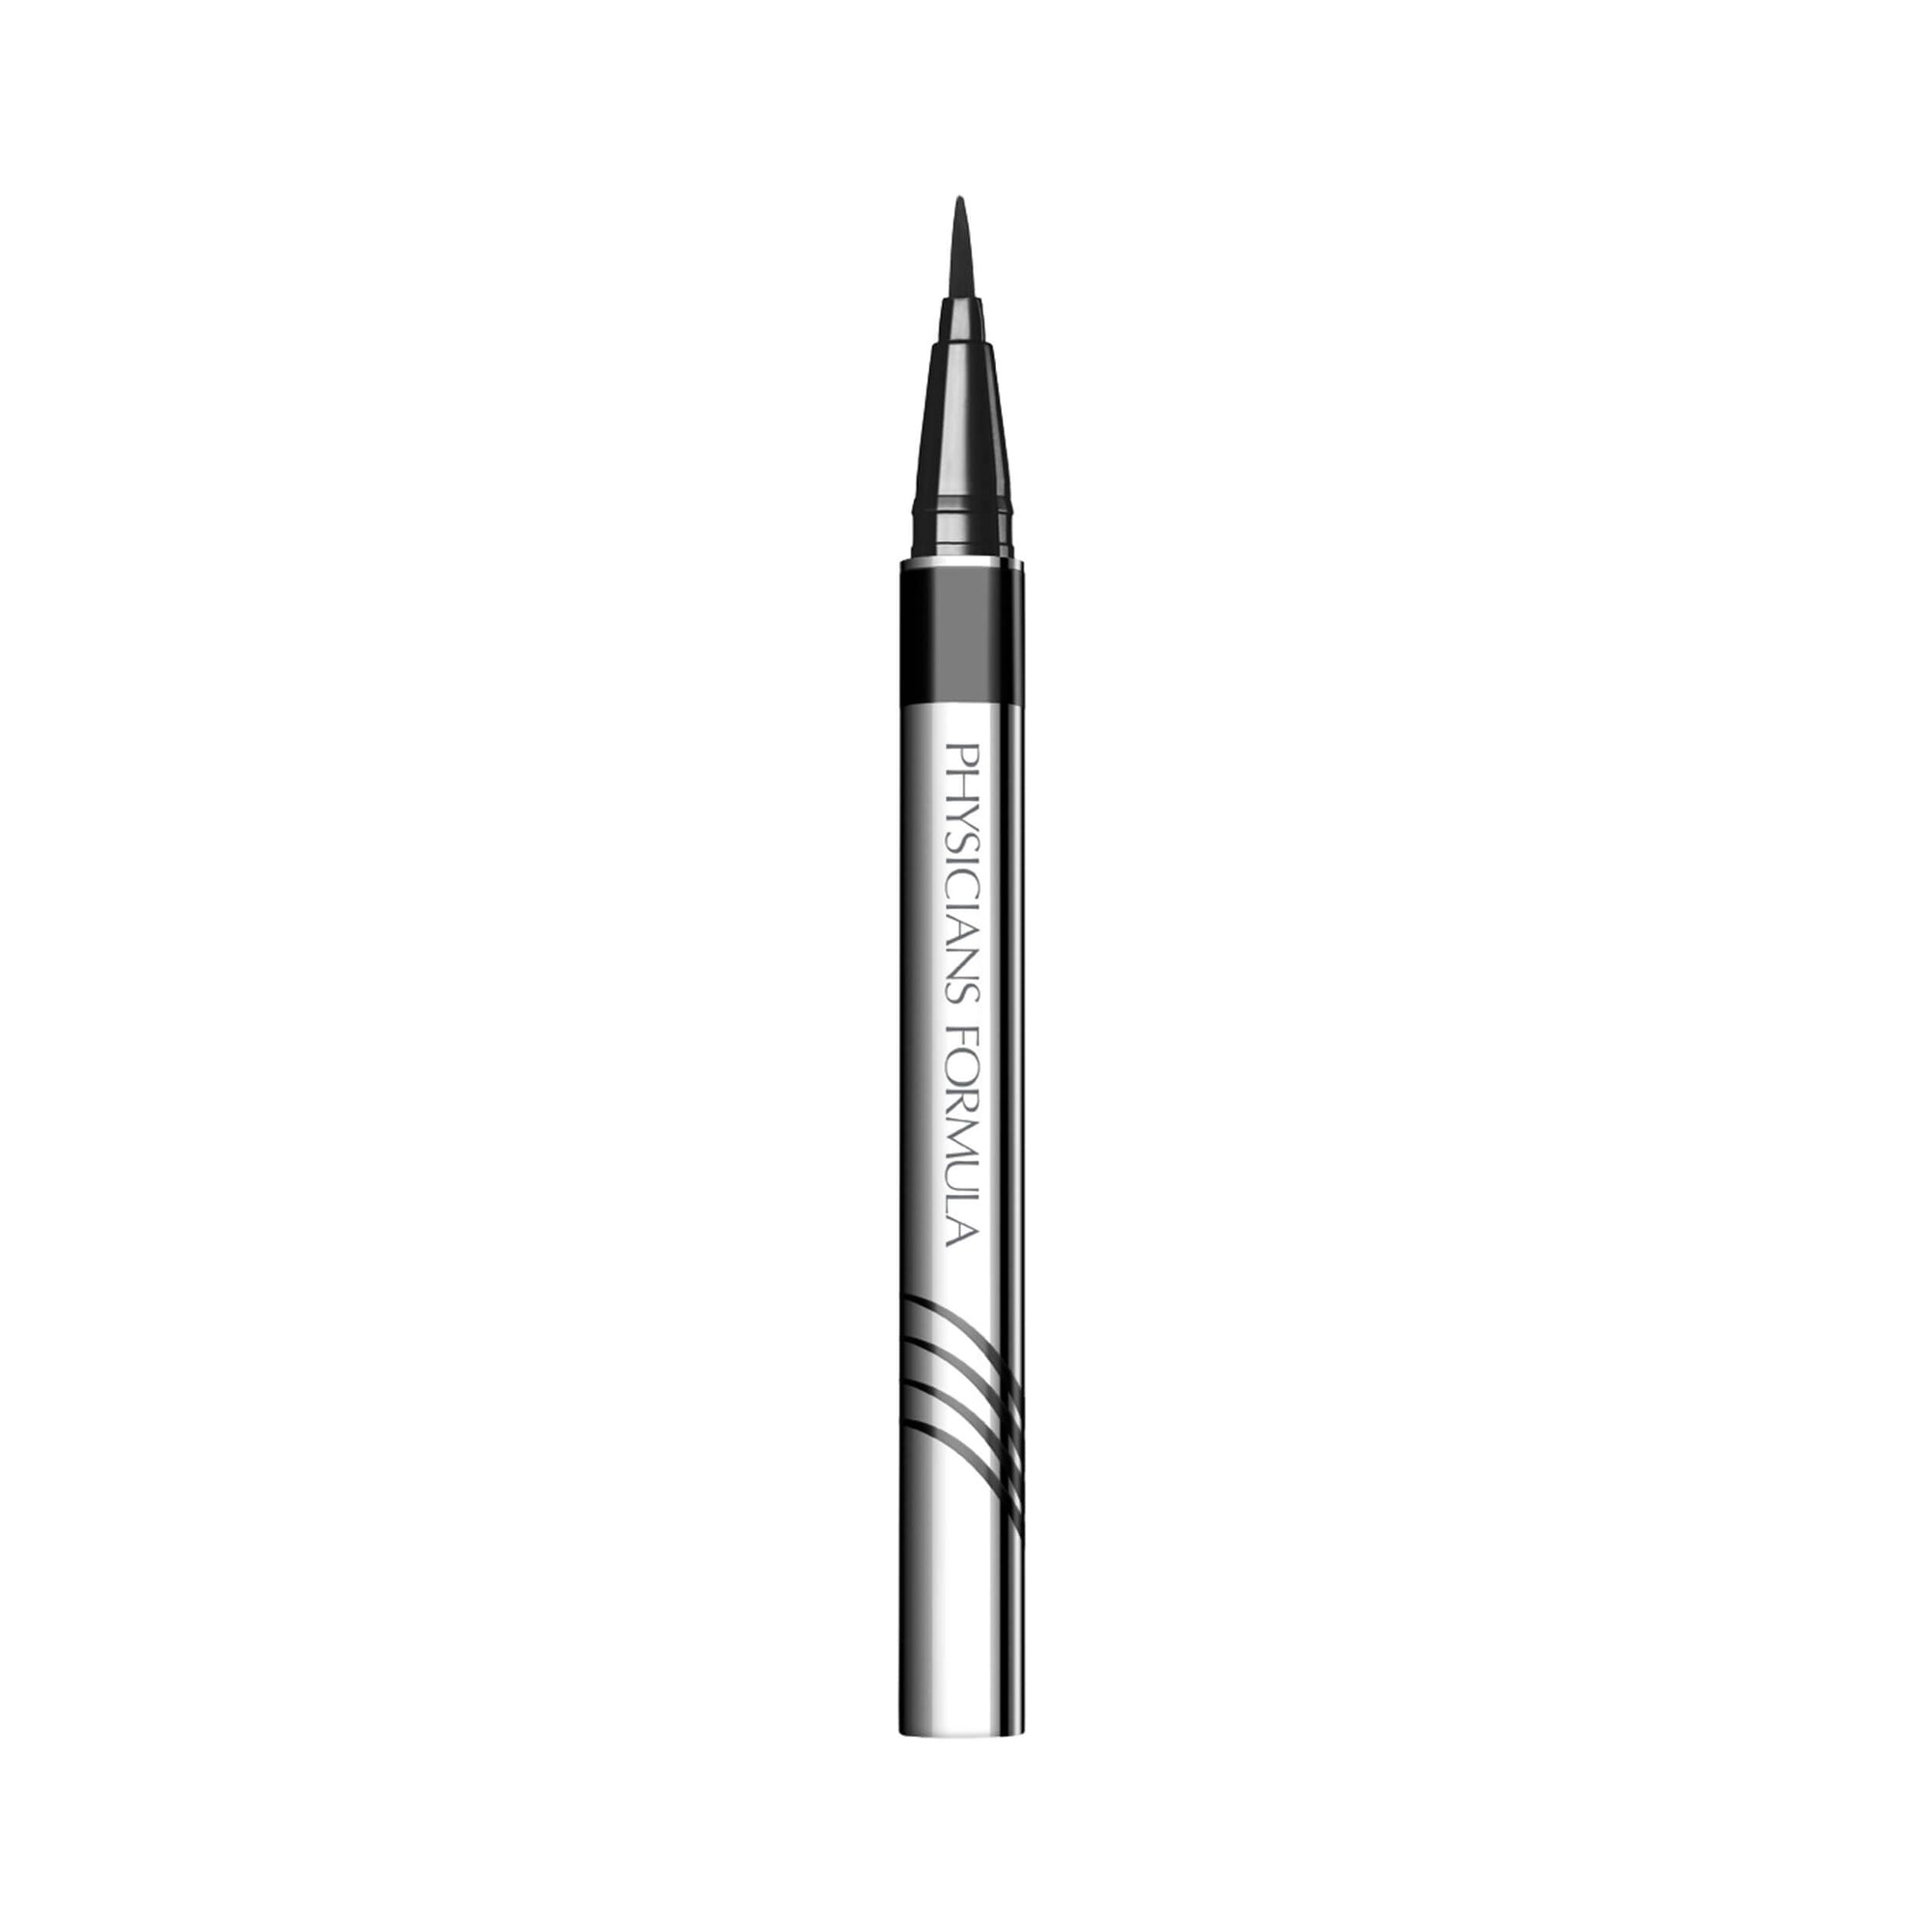 Physicians Formula Eye Booster 2-in-1 Lash Boosting Eyeline Serum Ultra Black